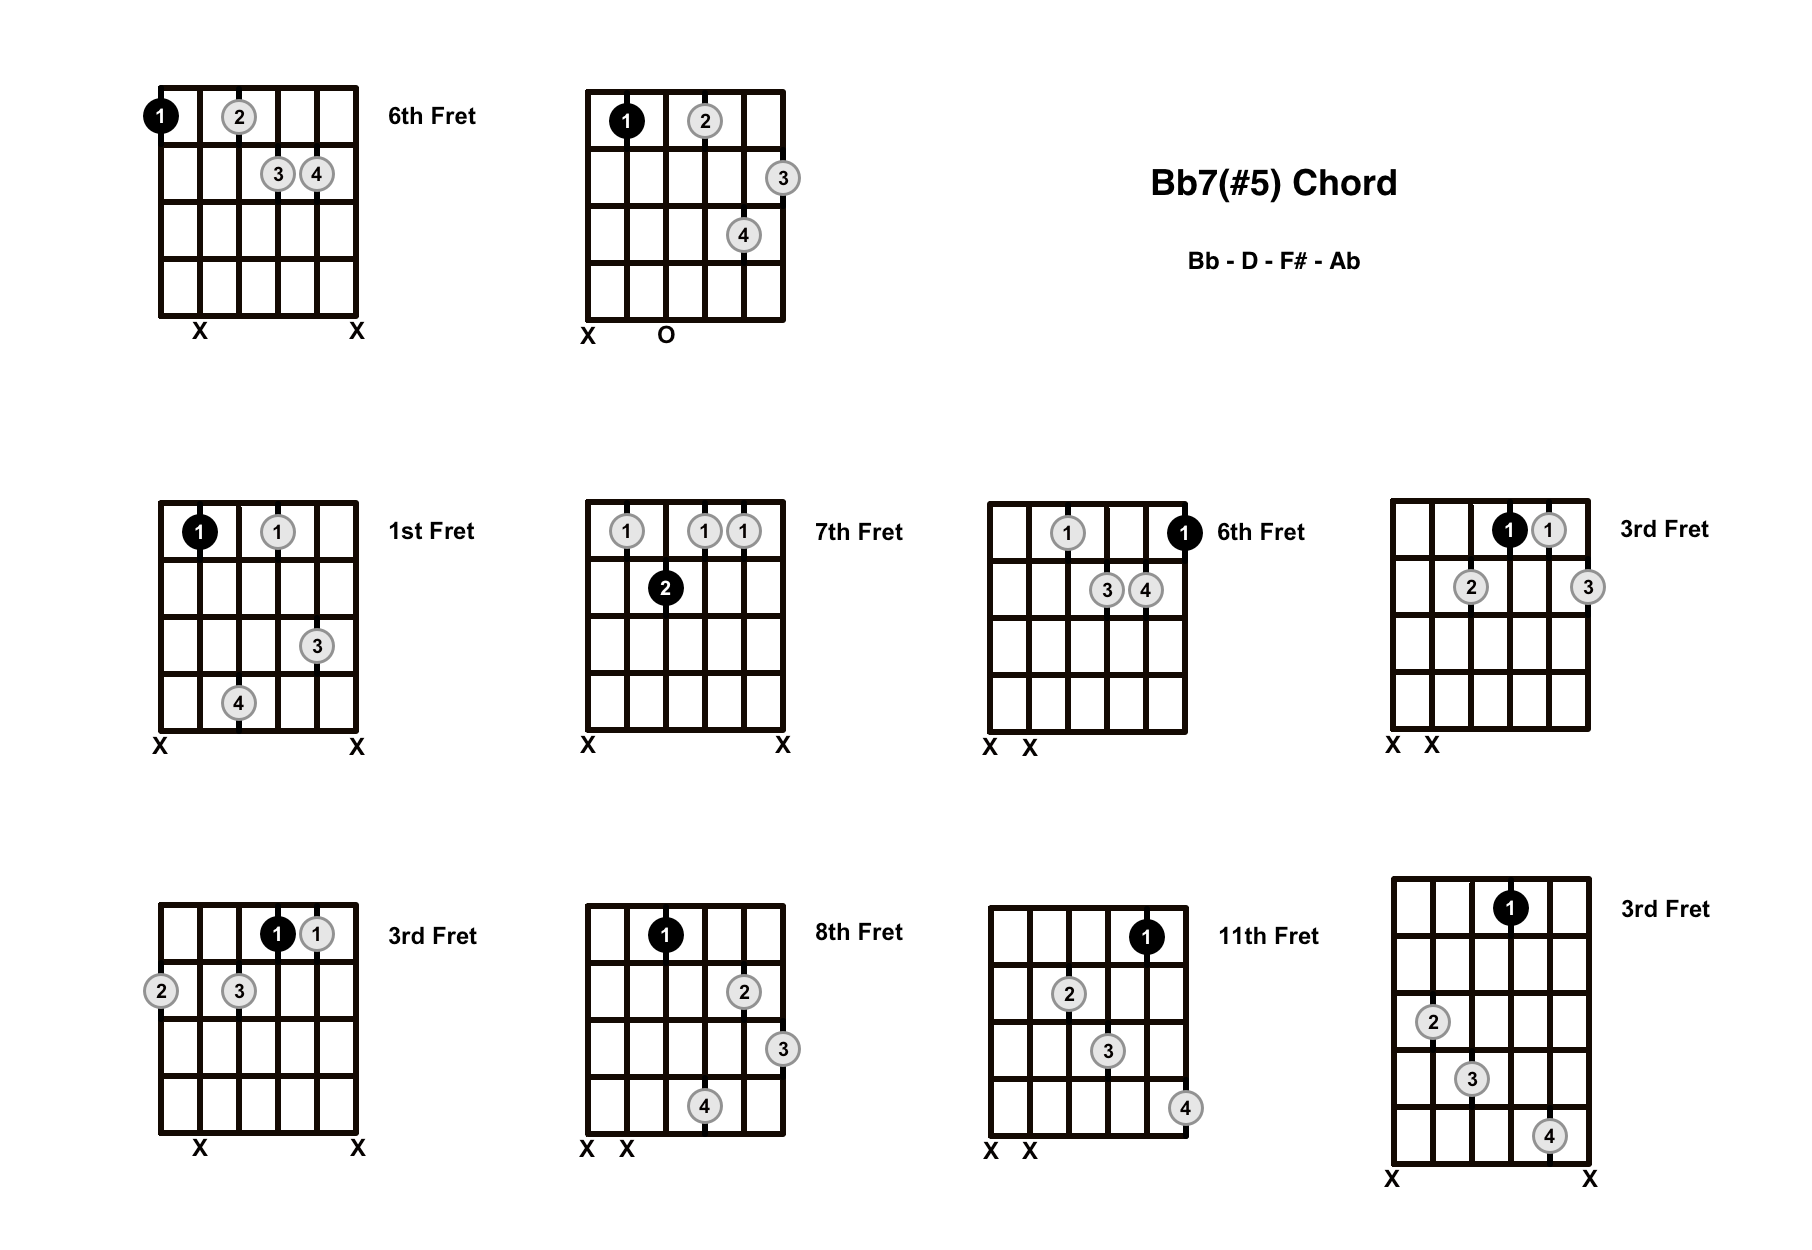 B Flat Augmented 7 Chord On The Guitar (Bb7#5, Bb+7) – Diagrams, Finger Positions and Theory